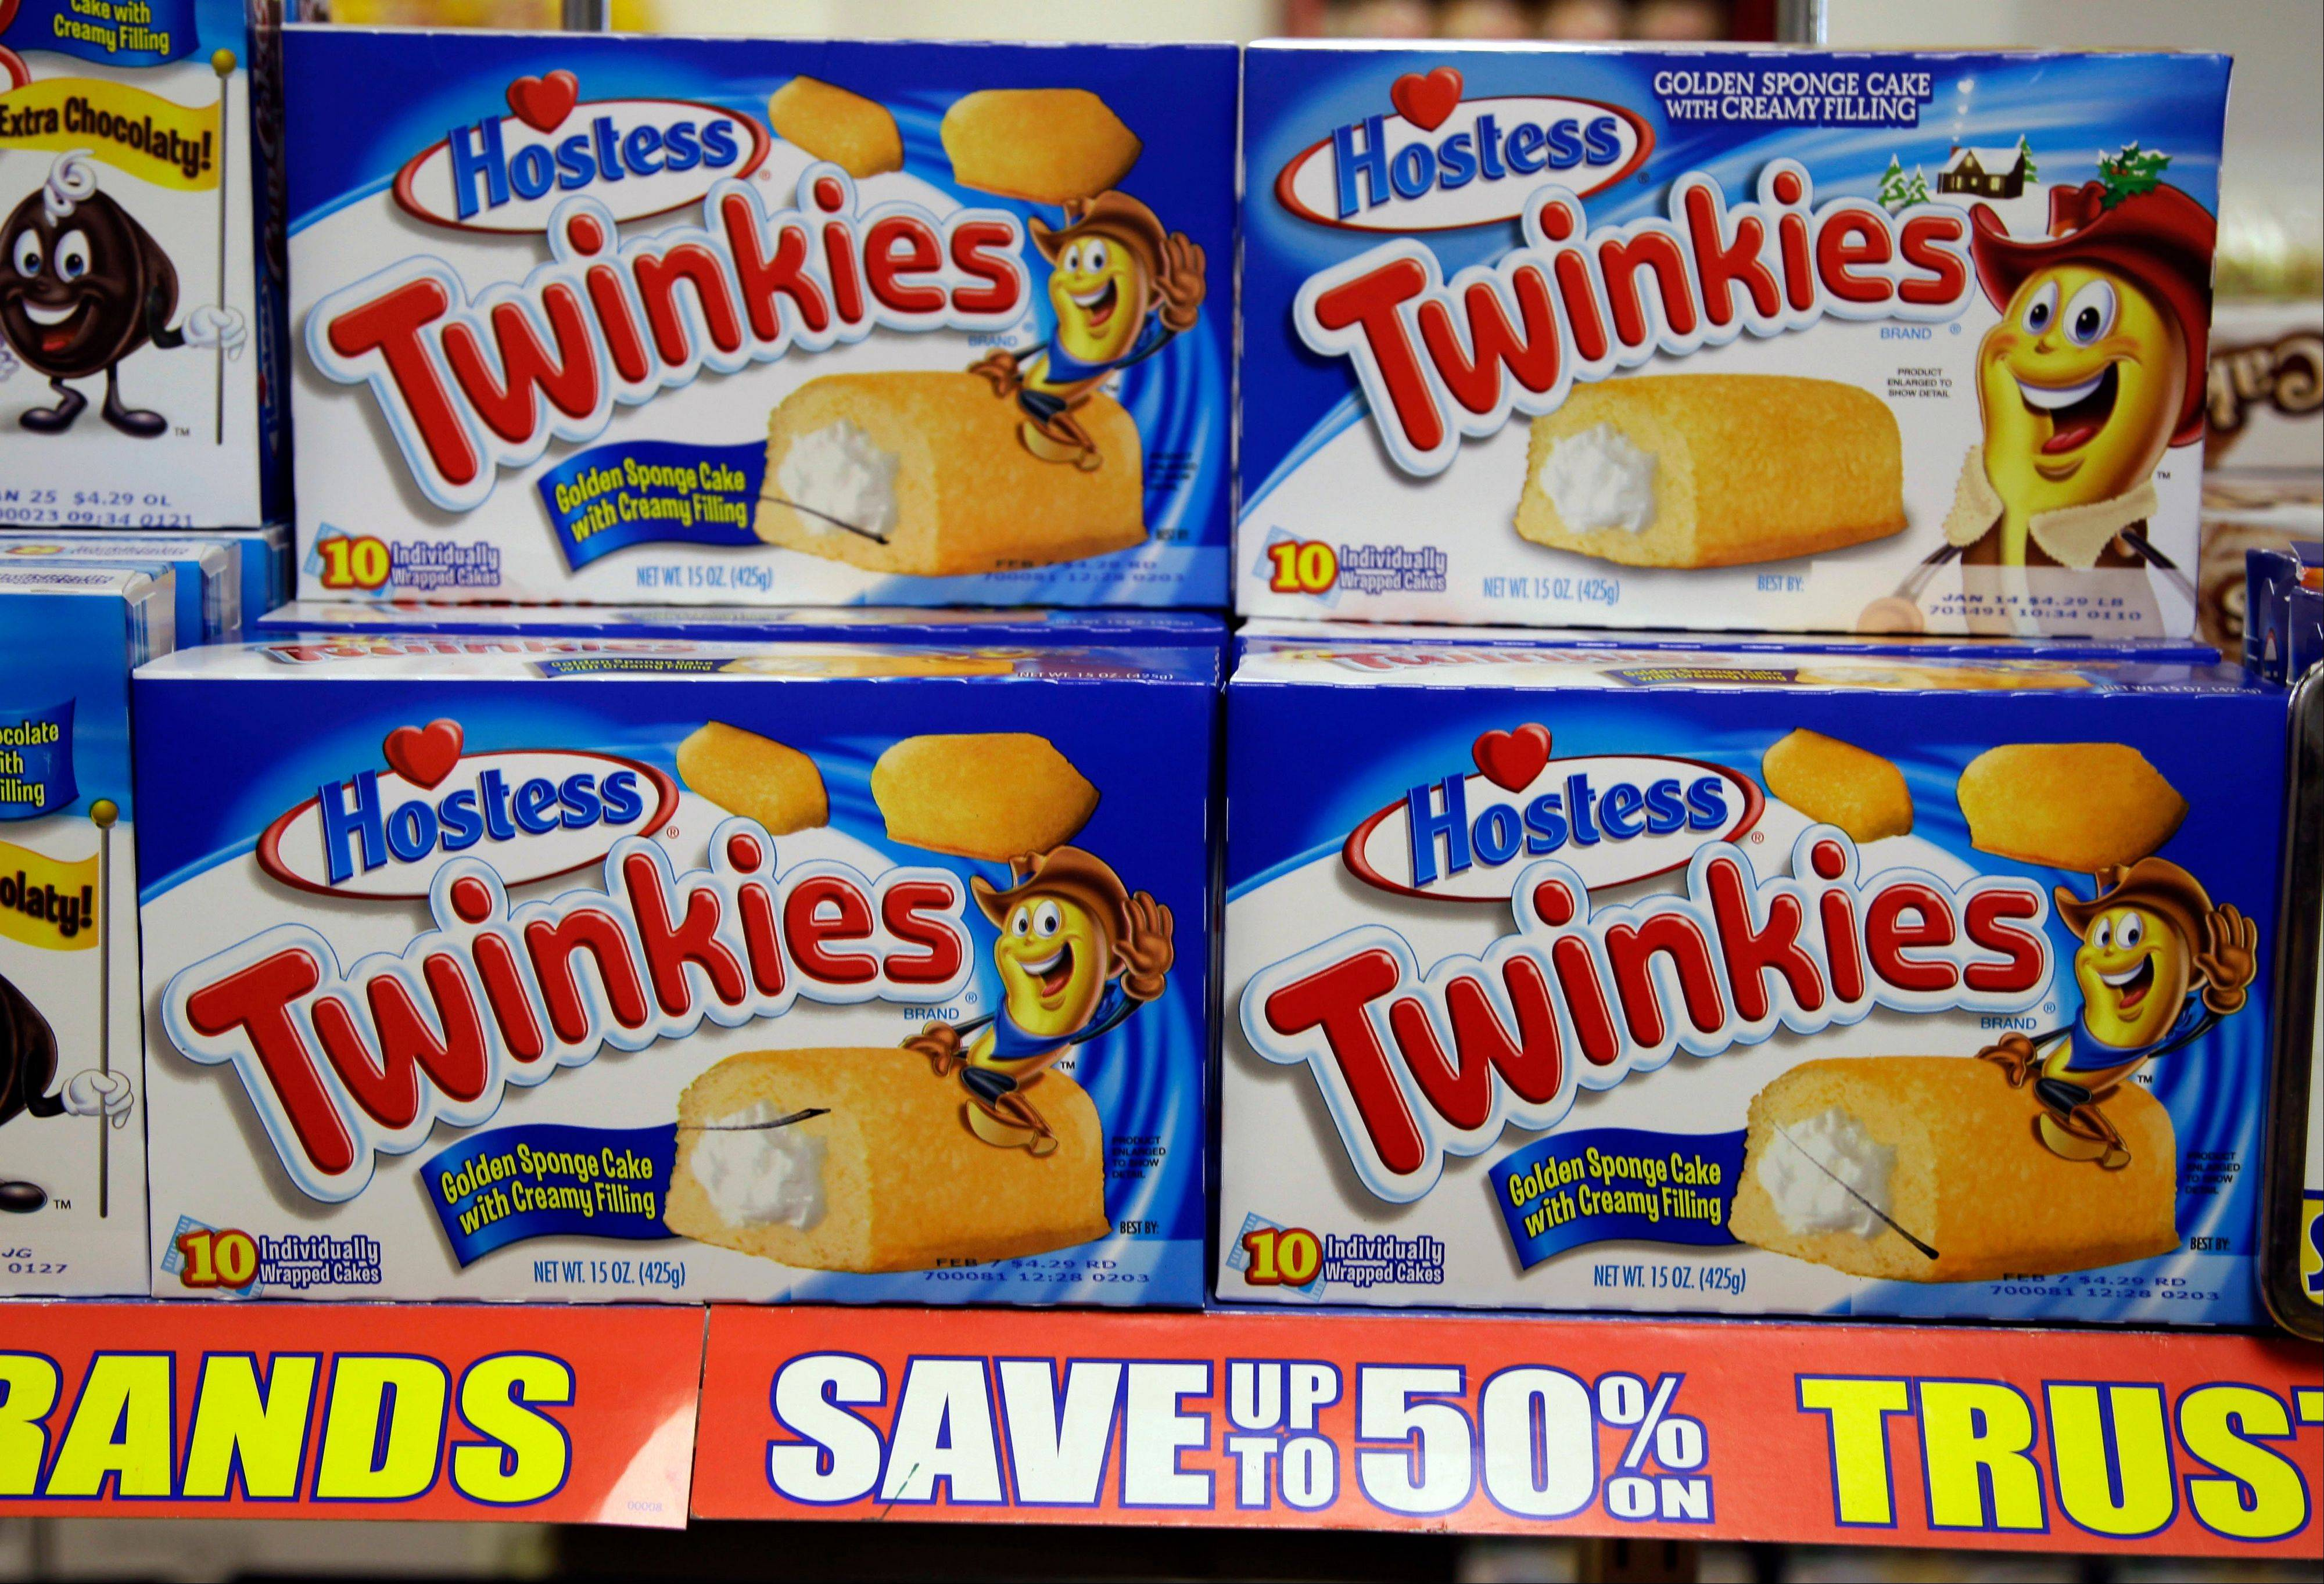 Wal-Mart Stores Inc. and Kroger Co. are among the bidders for assets being sold by Hostess Brands Inc., the bankrupt maker of Wonder bread and Twinkies, said a person familiar with the matter.